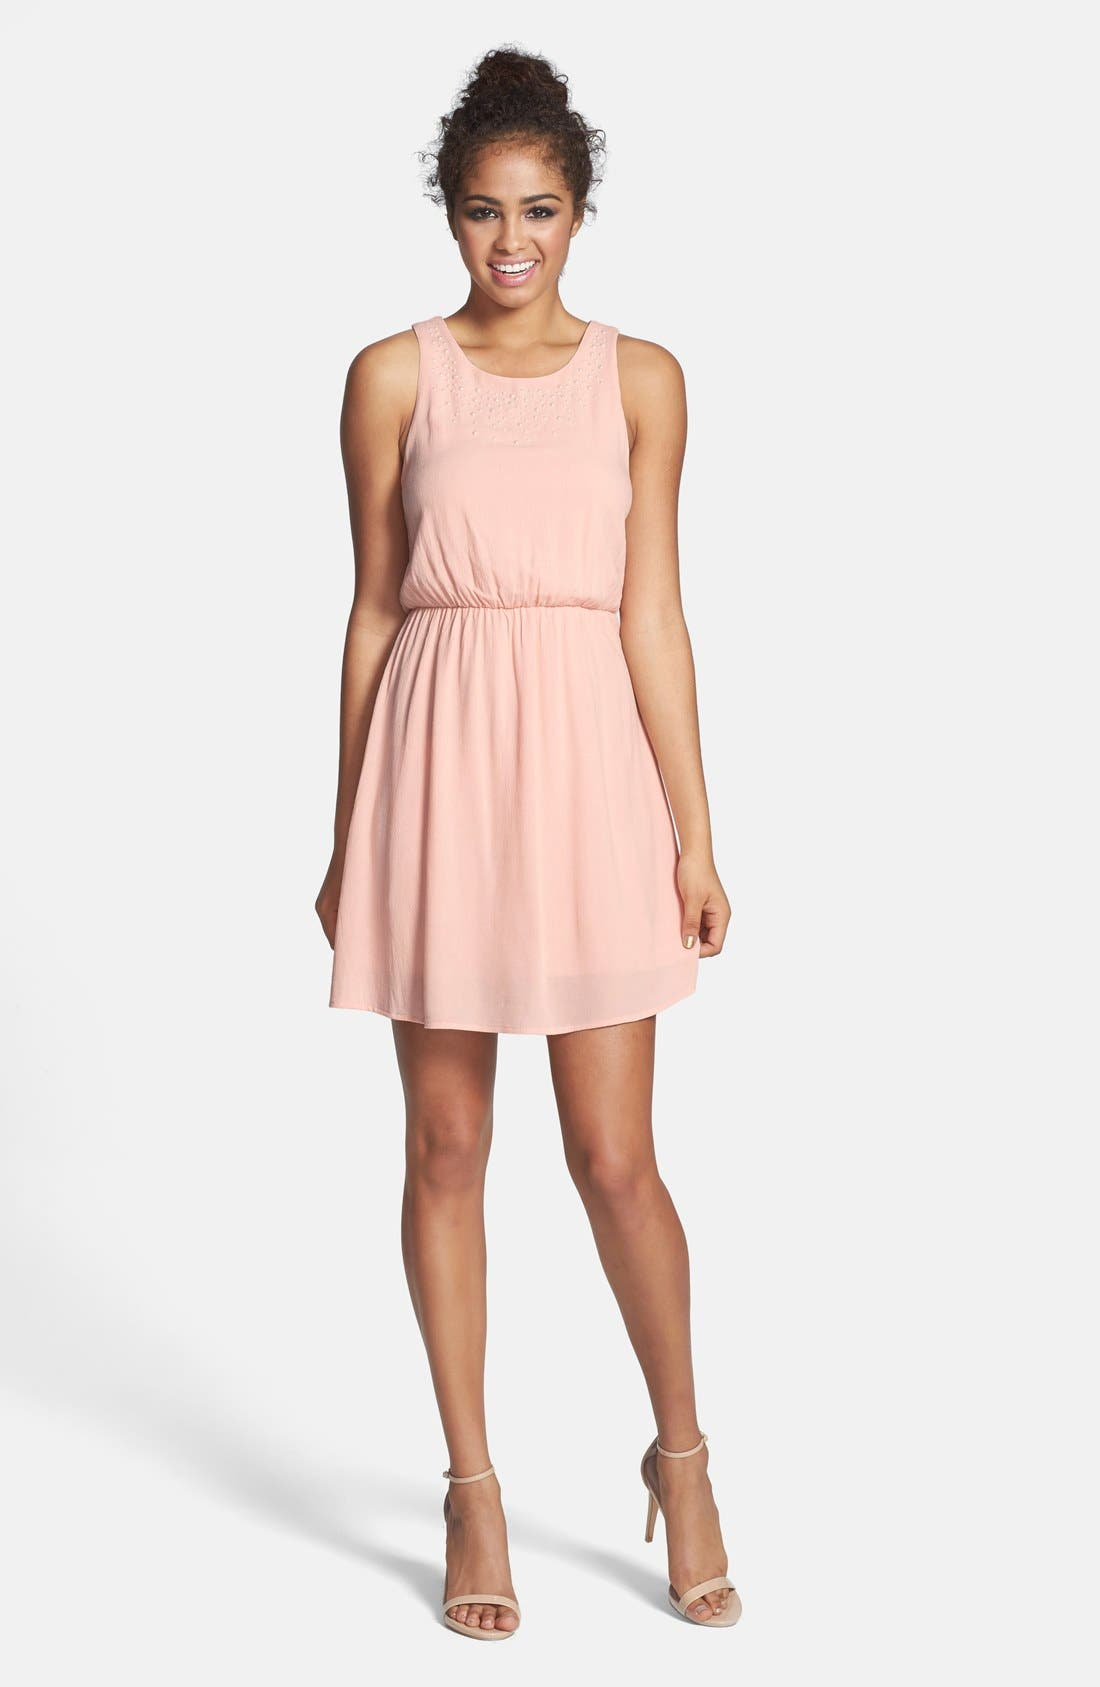 Alternate Image 1 Selected - Everly Embellished Party Dress (Juniors)